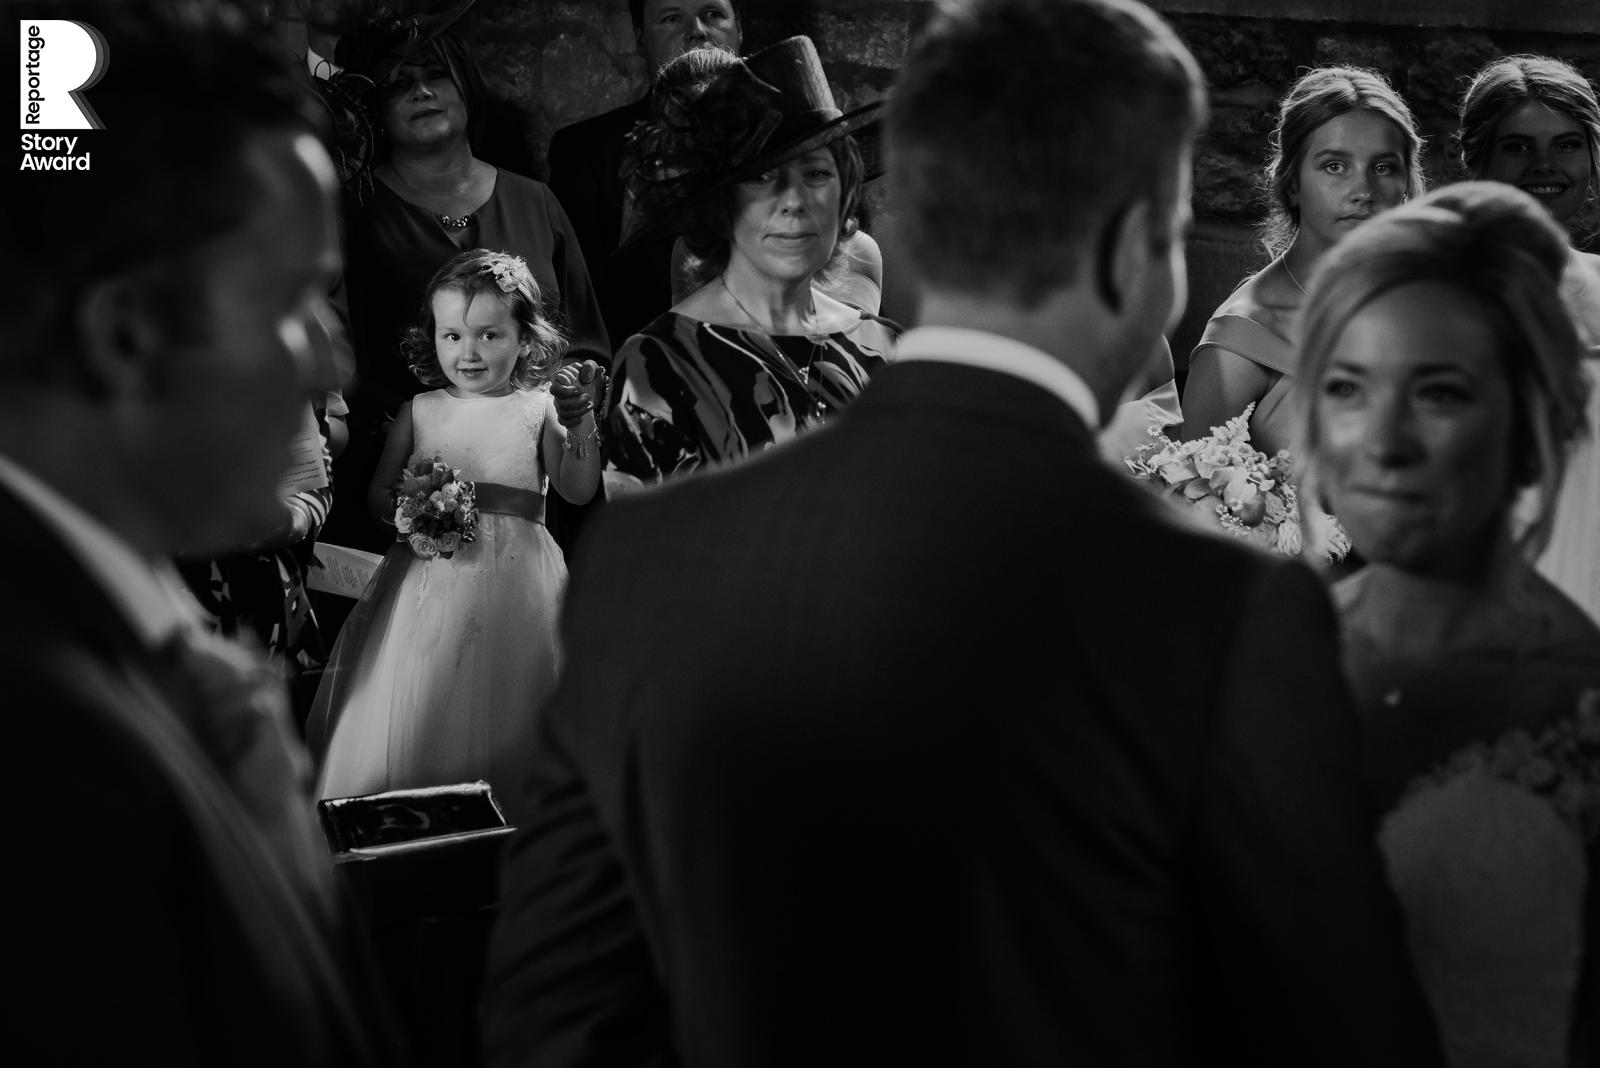 little girl watching the ceremony. Bw photo